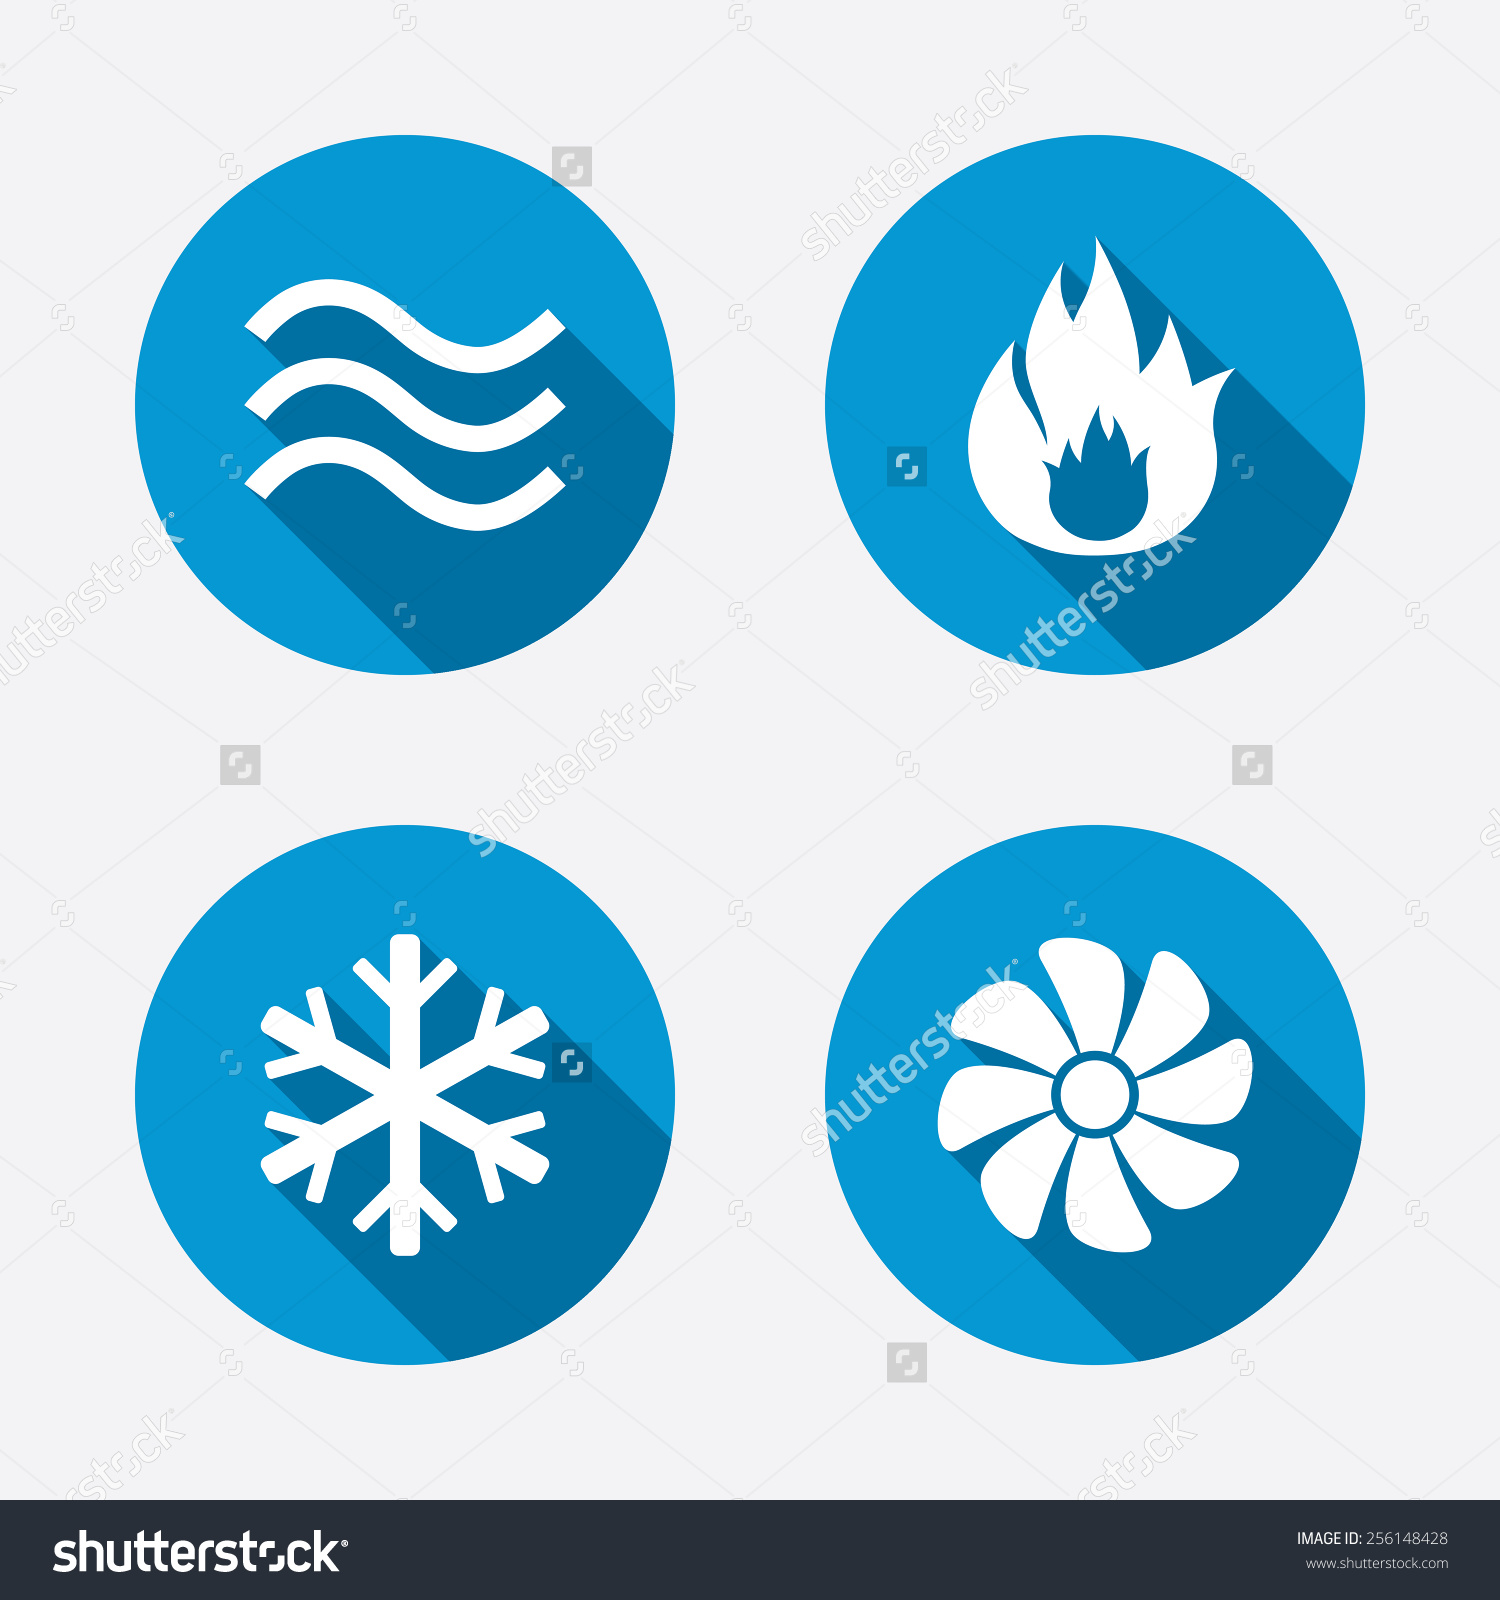 Heating Cooling Clip Art Media.